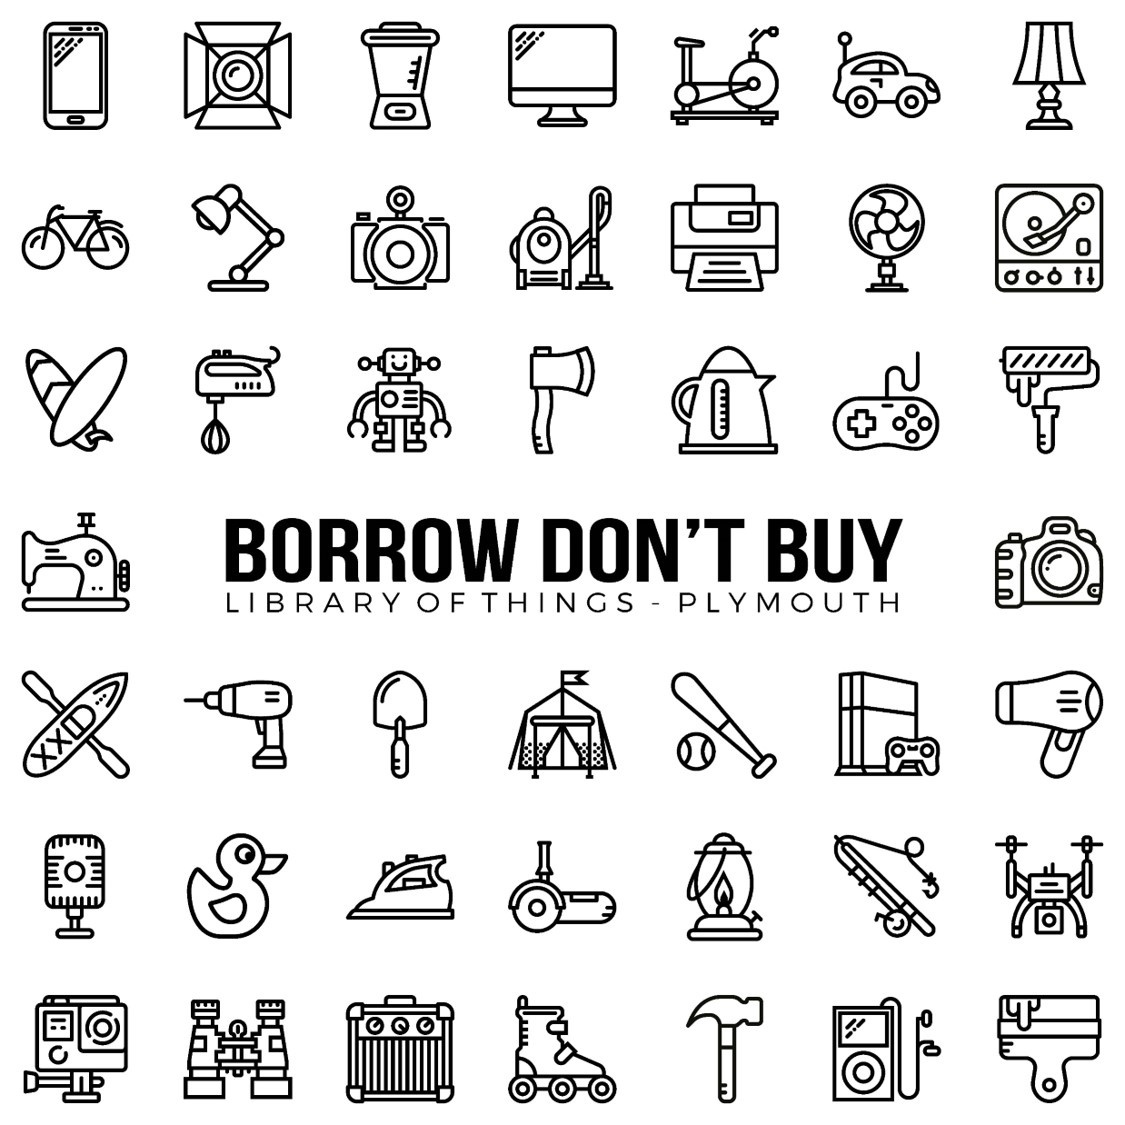 Borrow Don't Buy - Plymouth's Library of Things